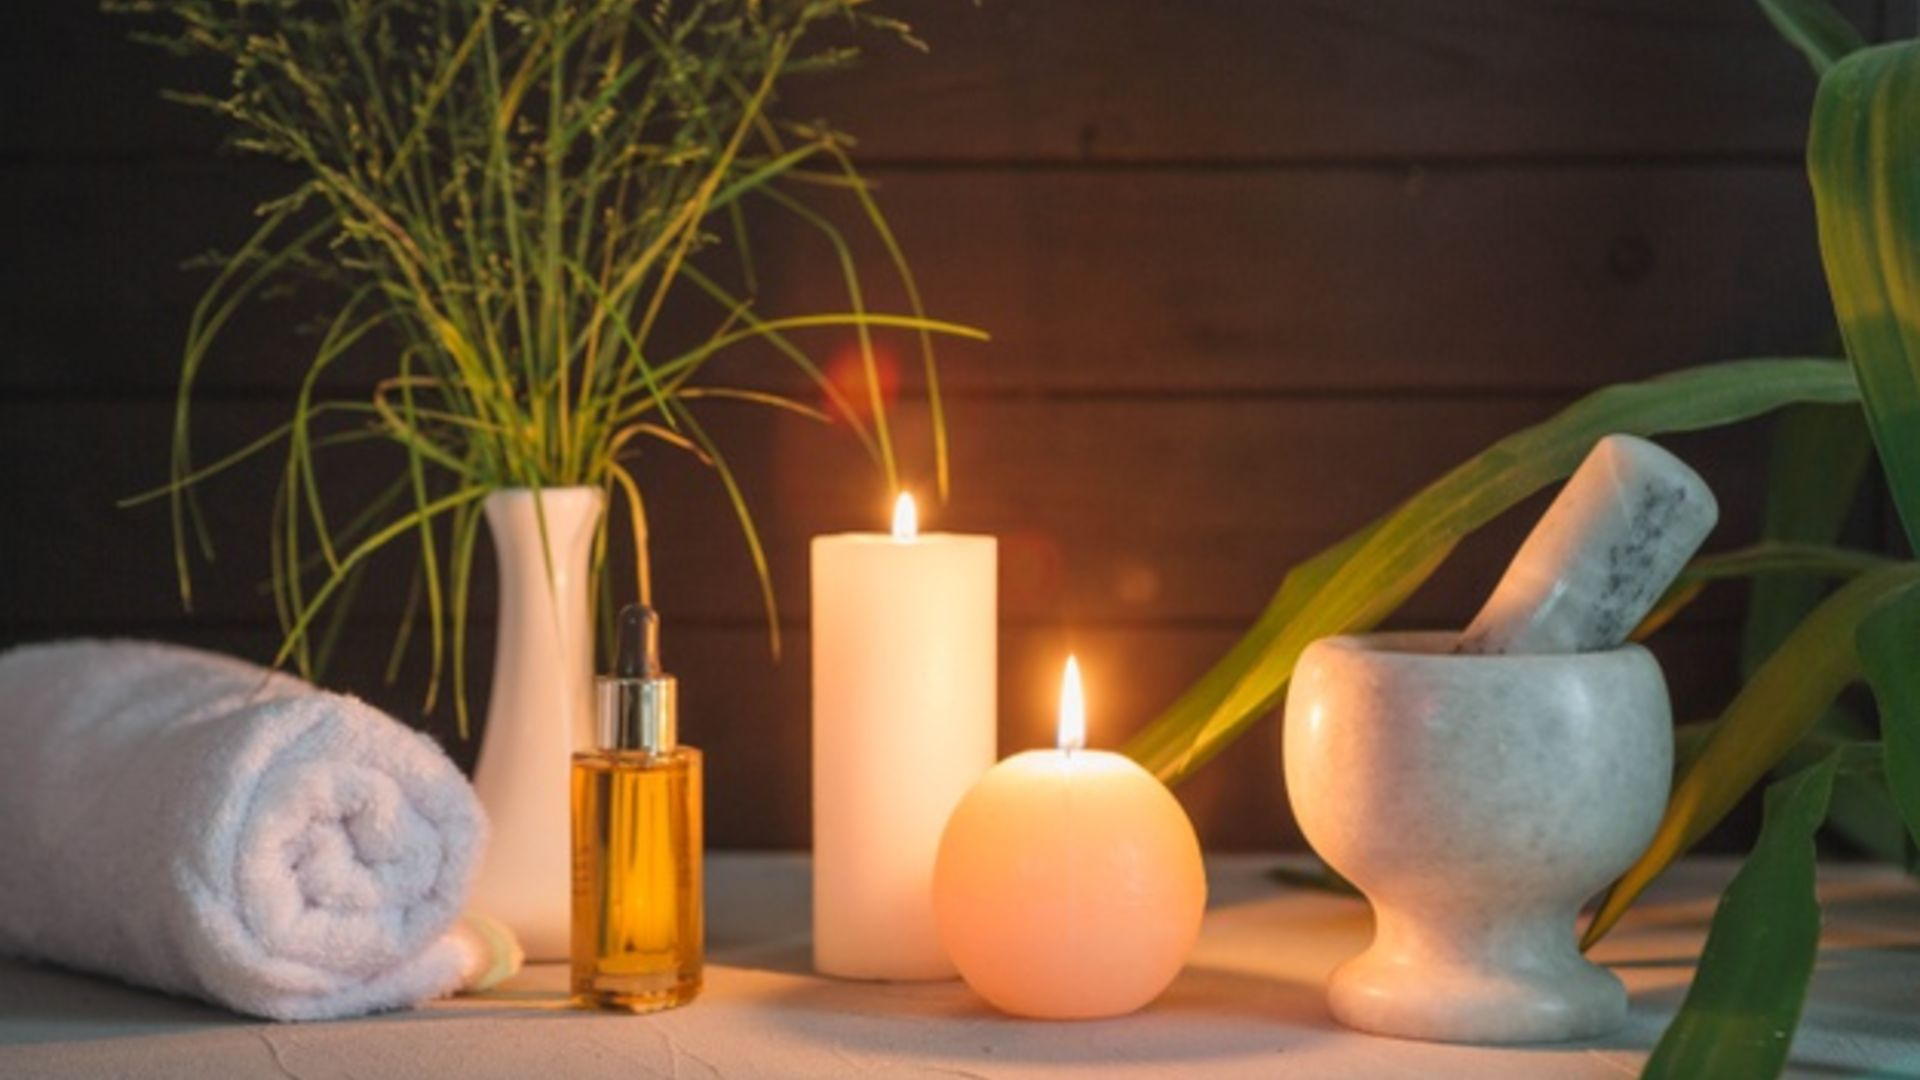 natural elements spa with candles 23 2148199468 1 1